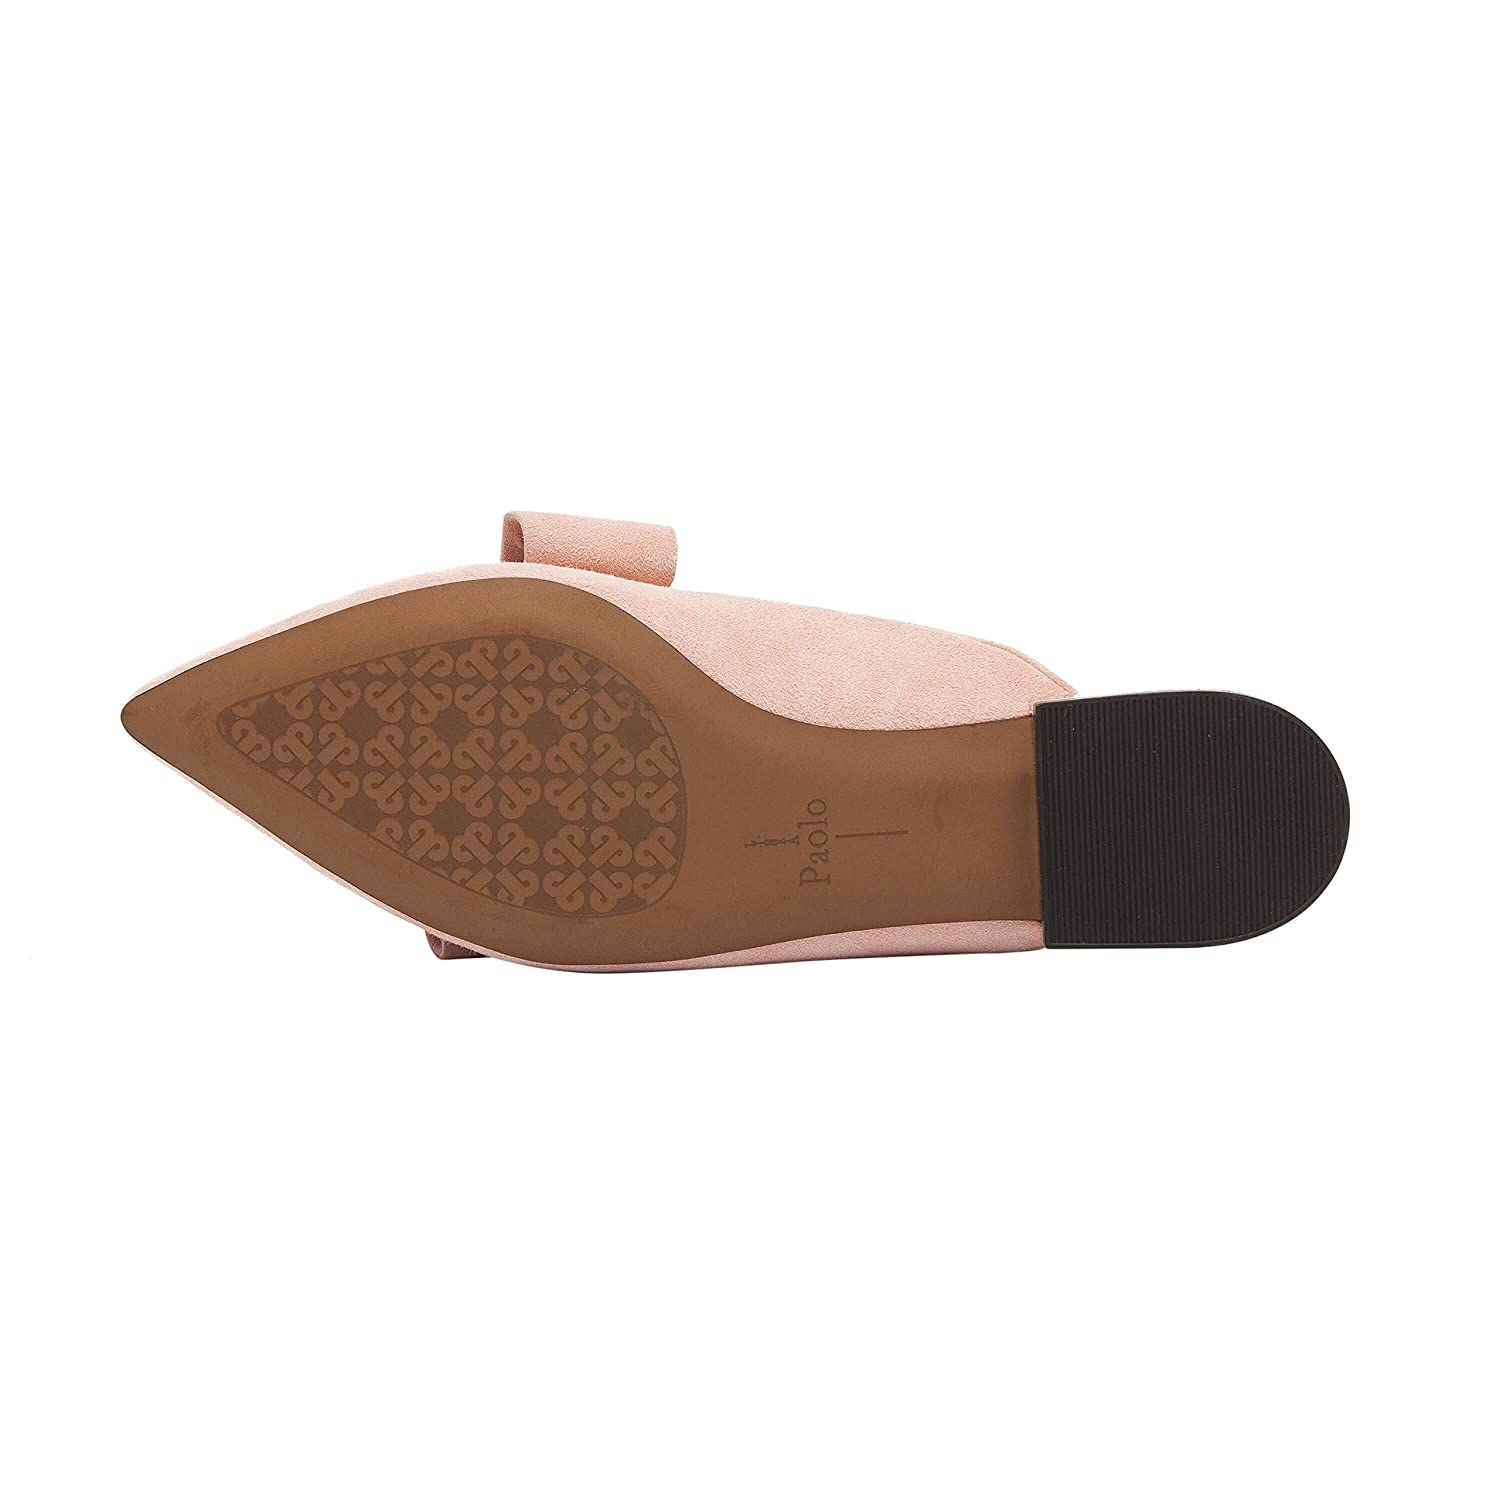 ANYA | Pointy Toe Origami Bow Slip-On Mule Flat Leather or Suede B07BC643LX 6.5 M US|Rose Suede